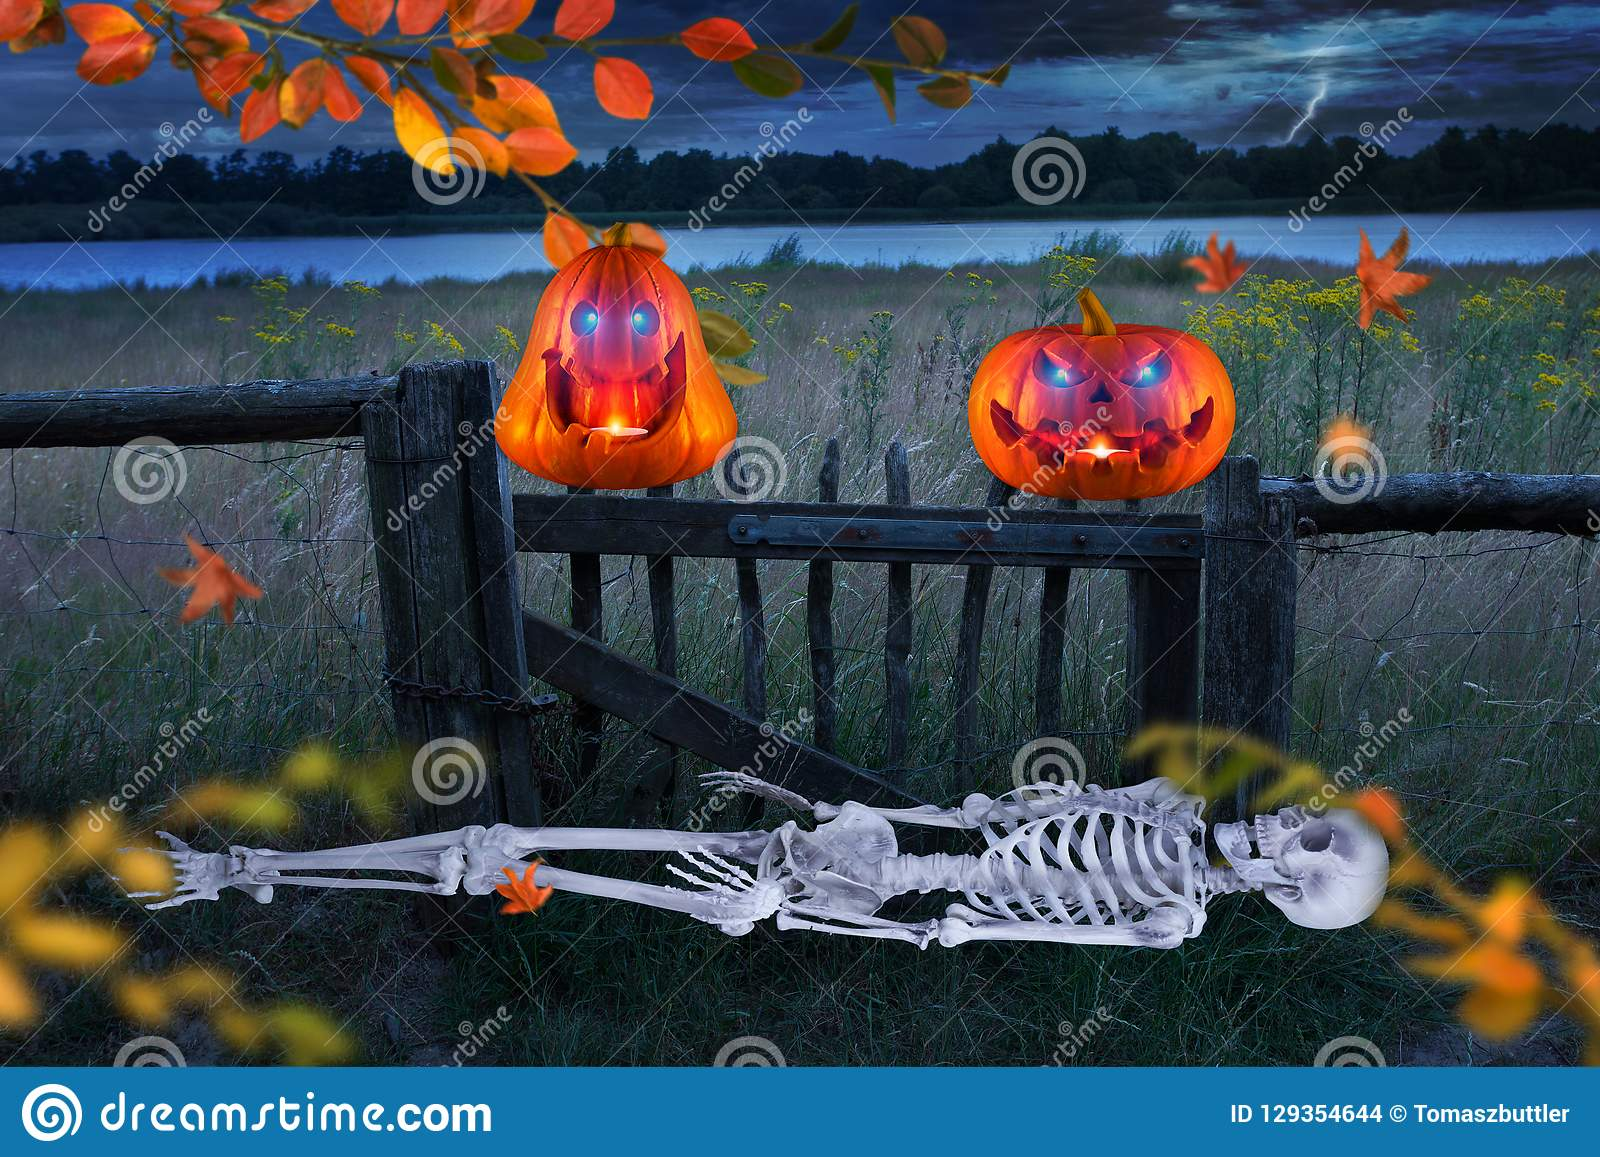 Spooky orange halloween pumpkins with glowing eyes in front of a meadow. Skeletton is lying on the ground.